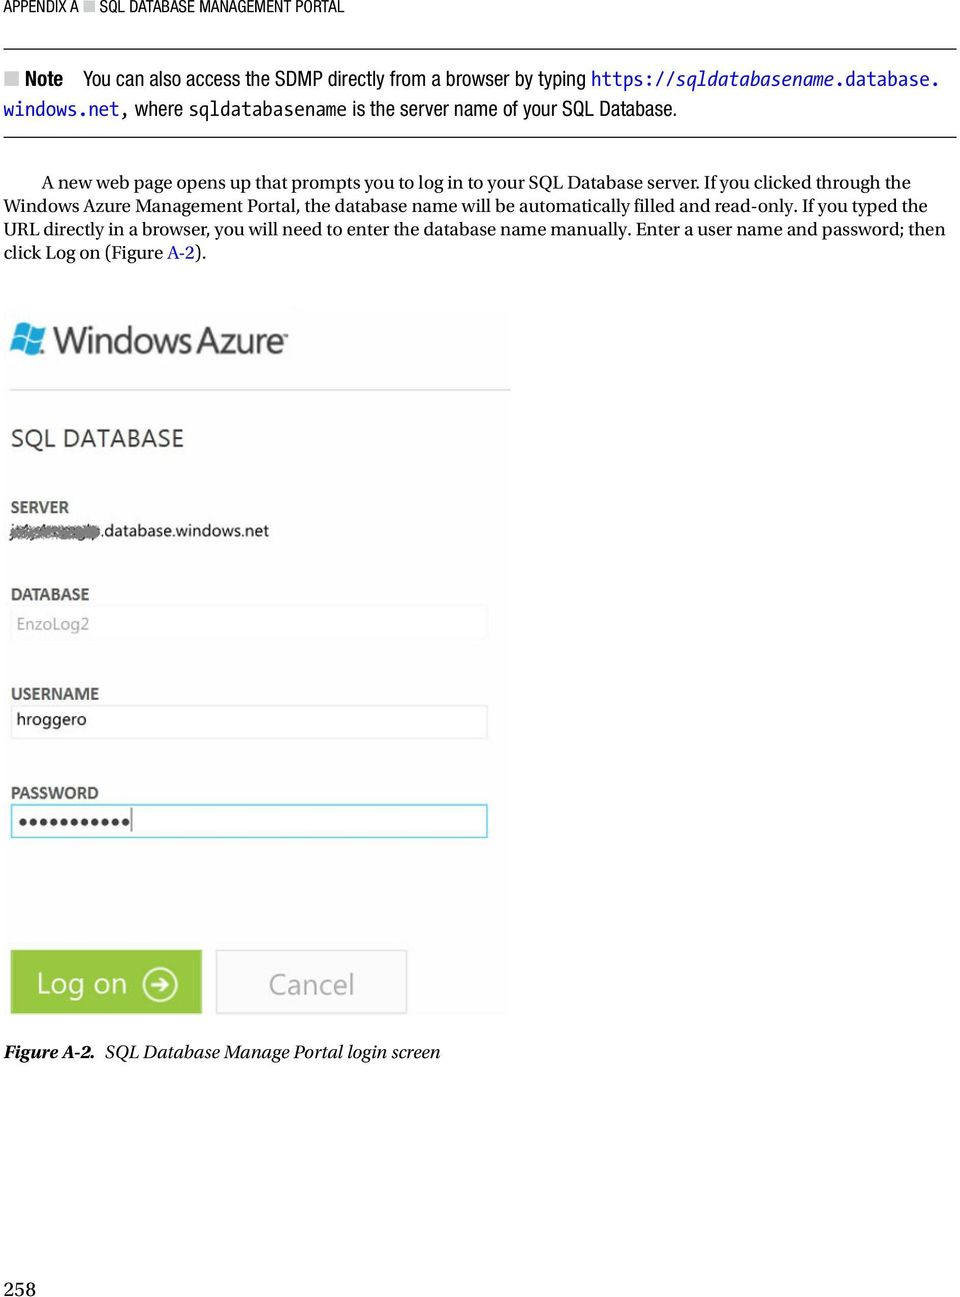 If you clicked through the Windows Azure Management Portal, the database name will be automatically filled and read-only.